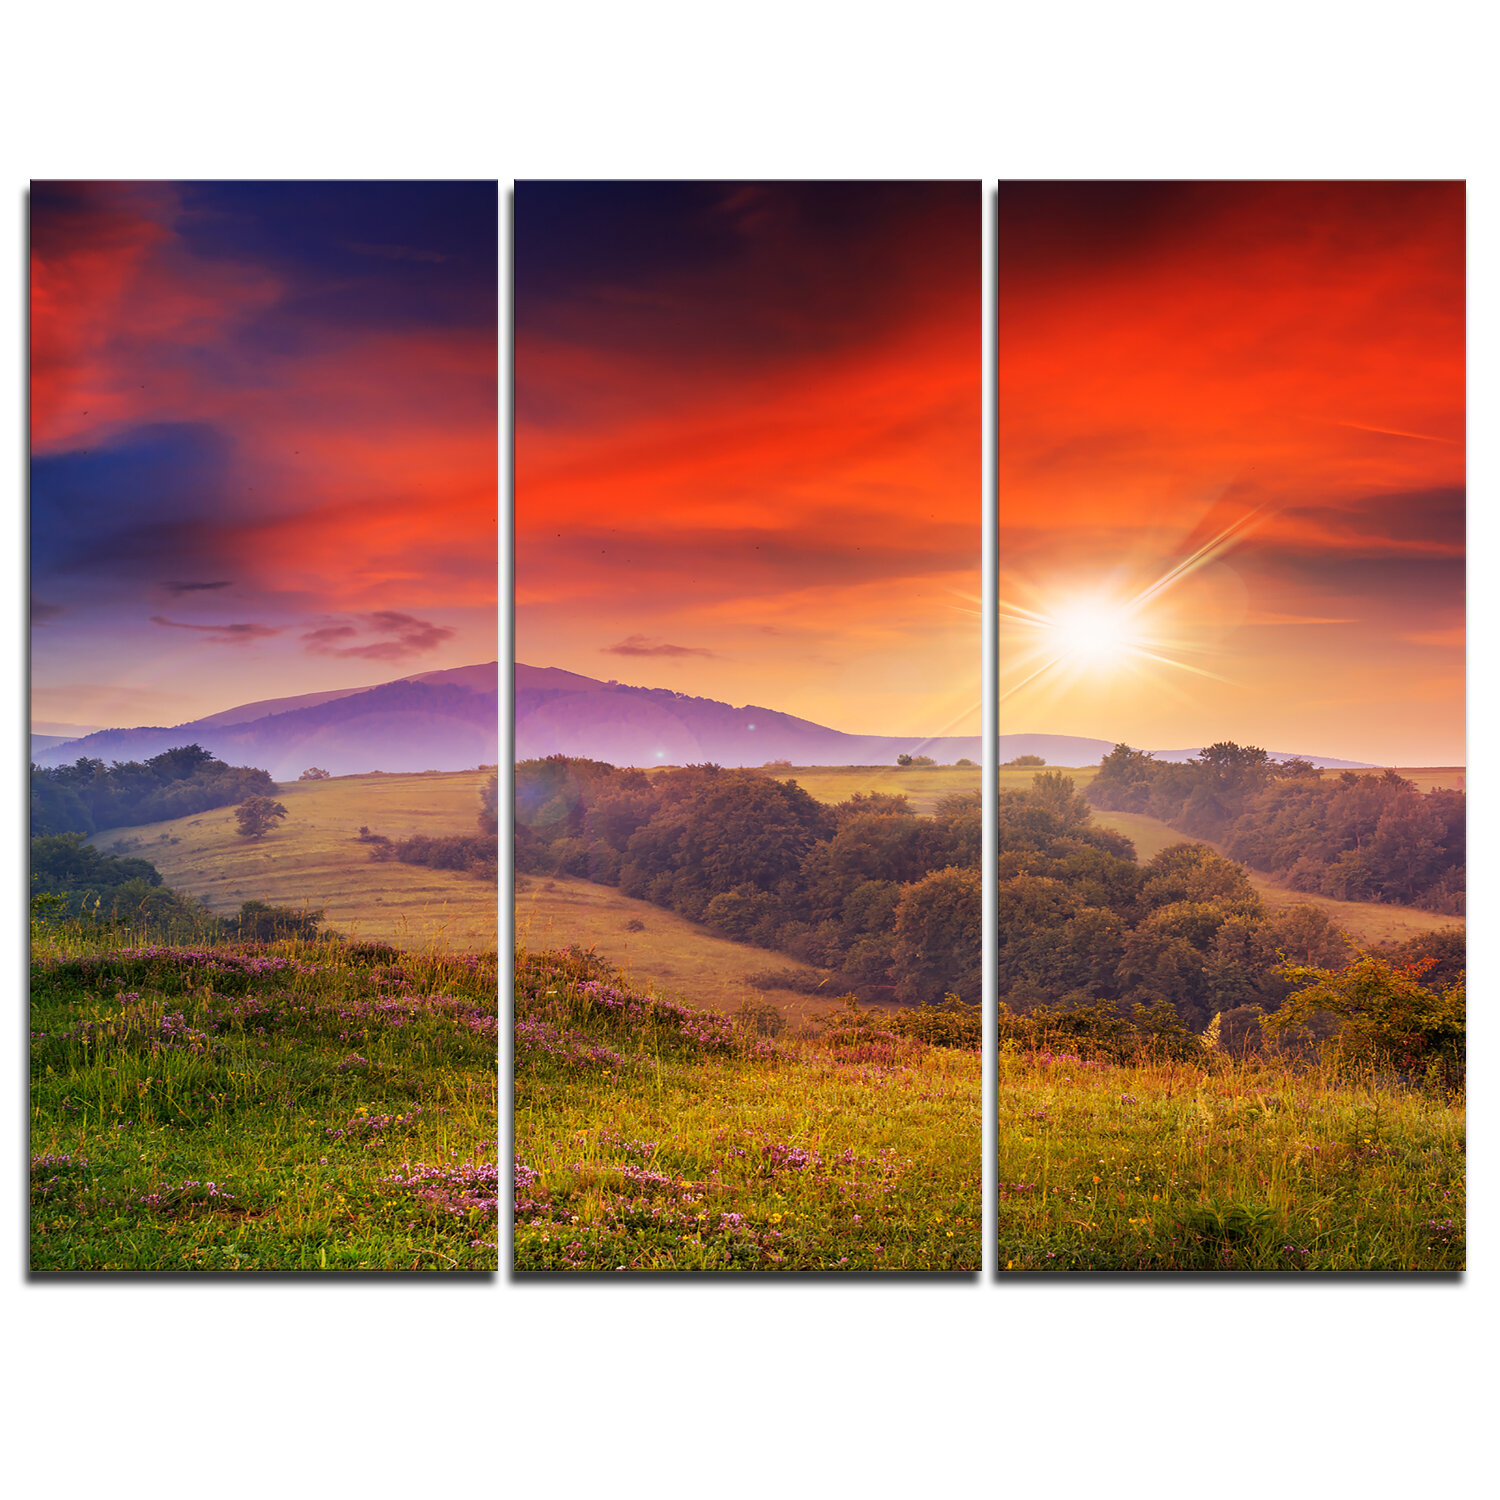 Designart Cold Morning Fog With Red Hot Sun 3 Piece Graphic Art On Wrapped Canvas Set Wayfair